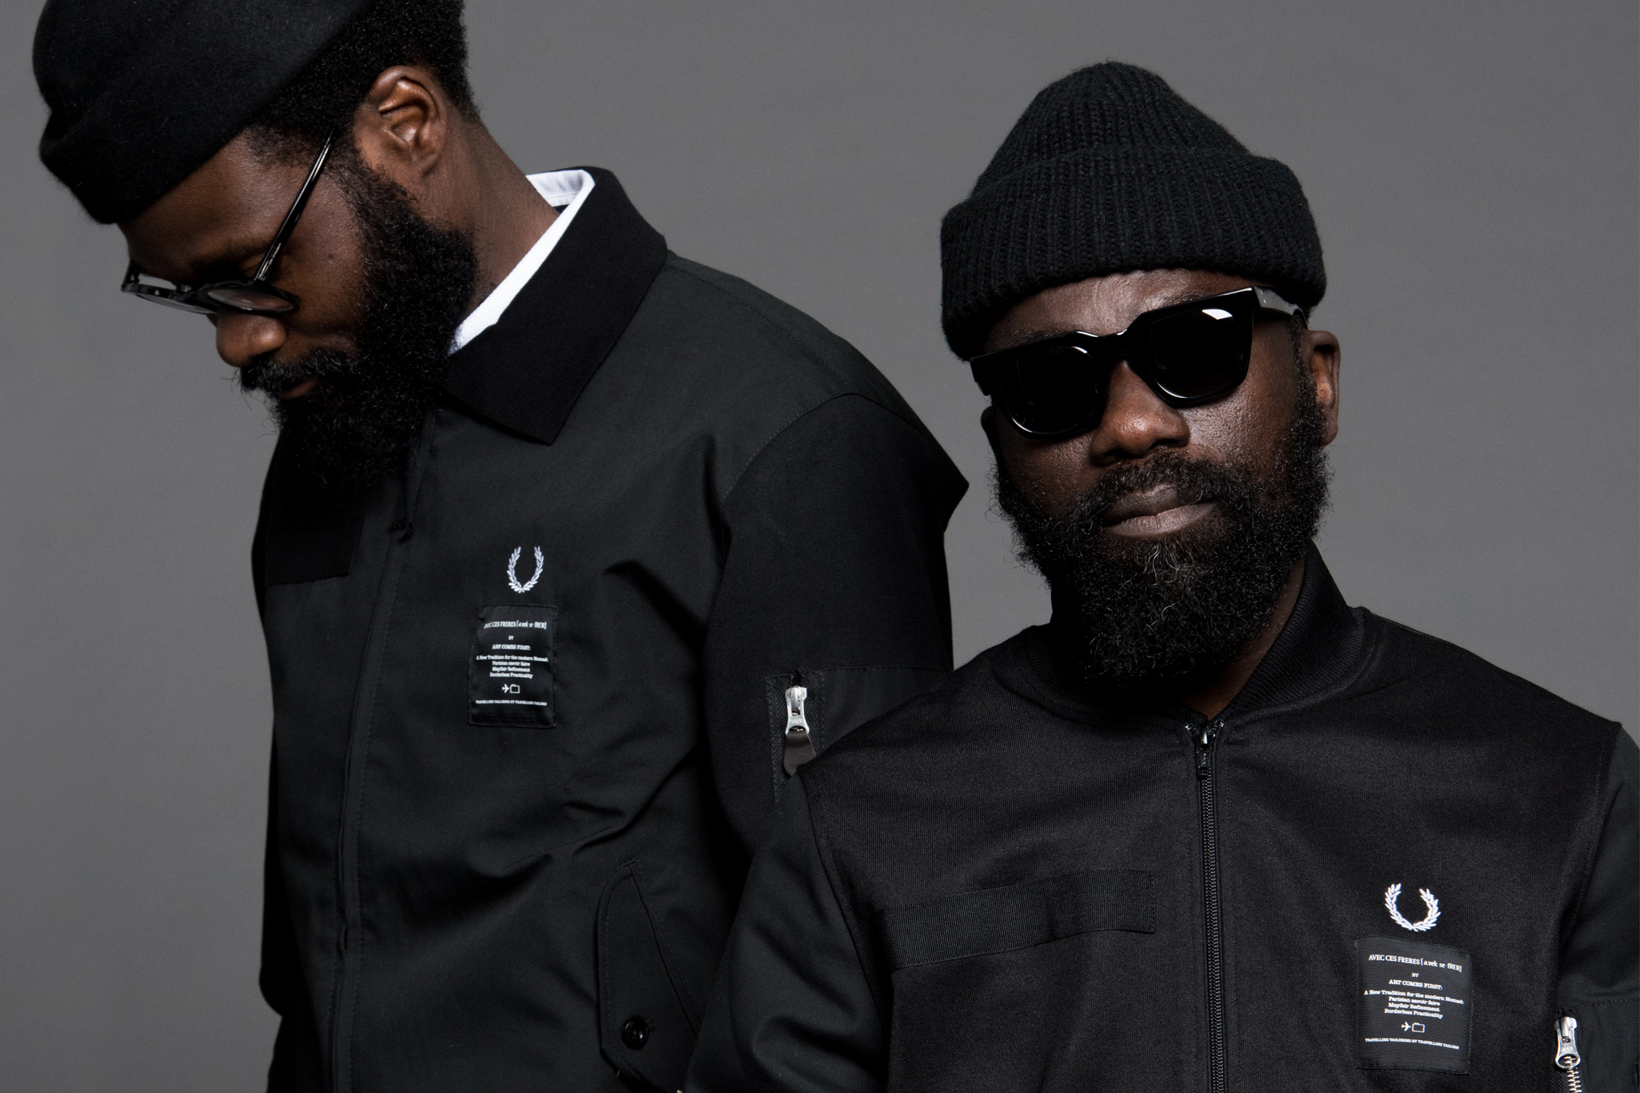 Fred Perry Taps Art Comes First for Subversive Capsule Collection